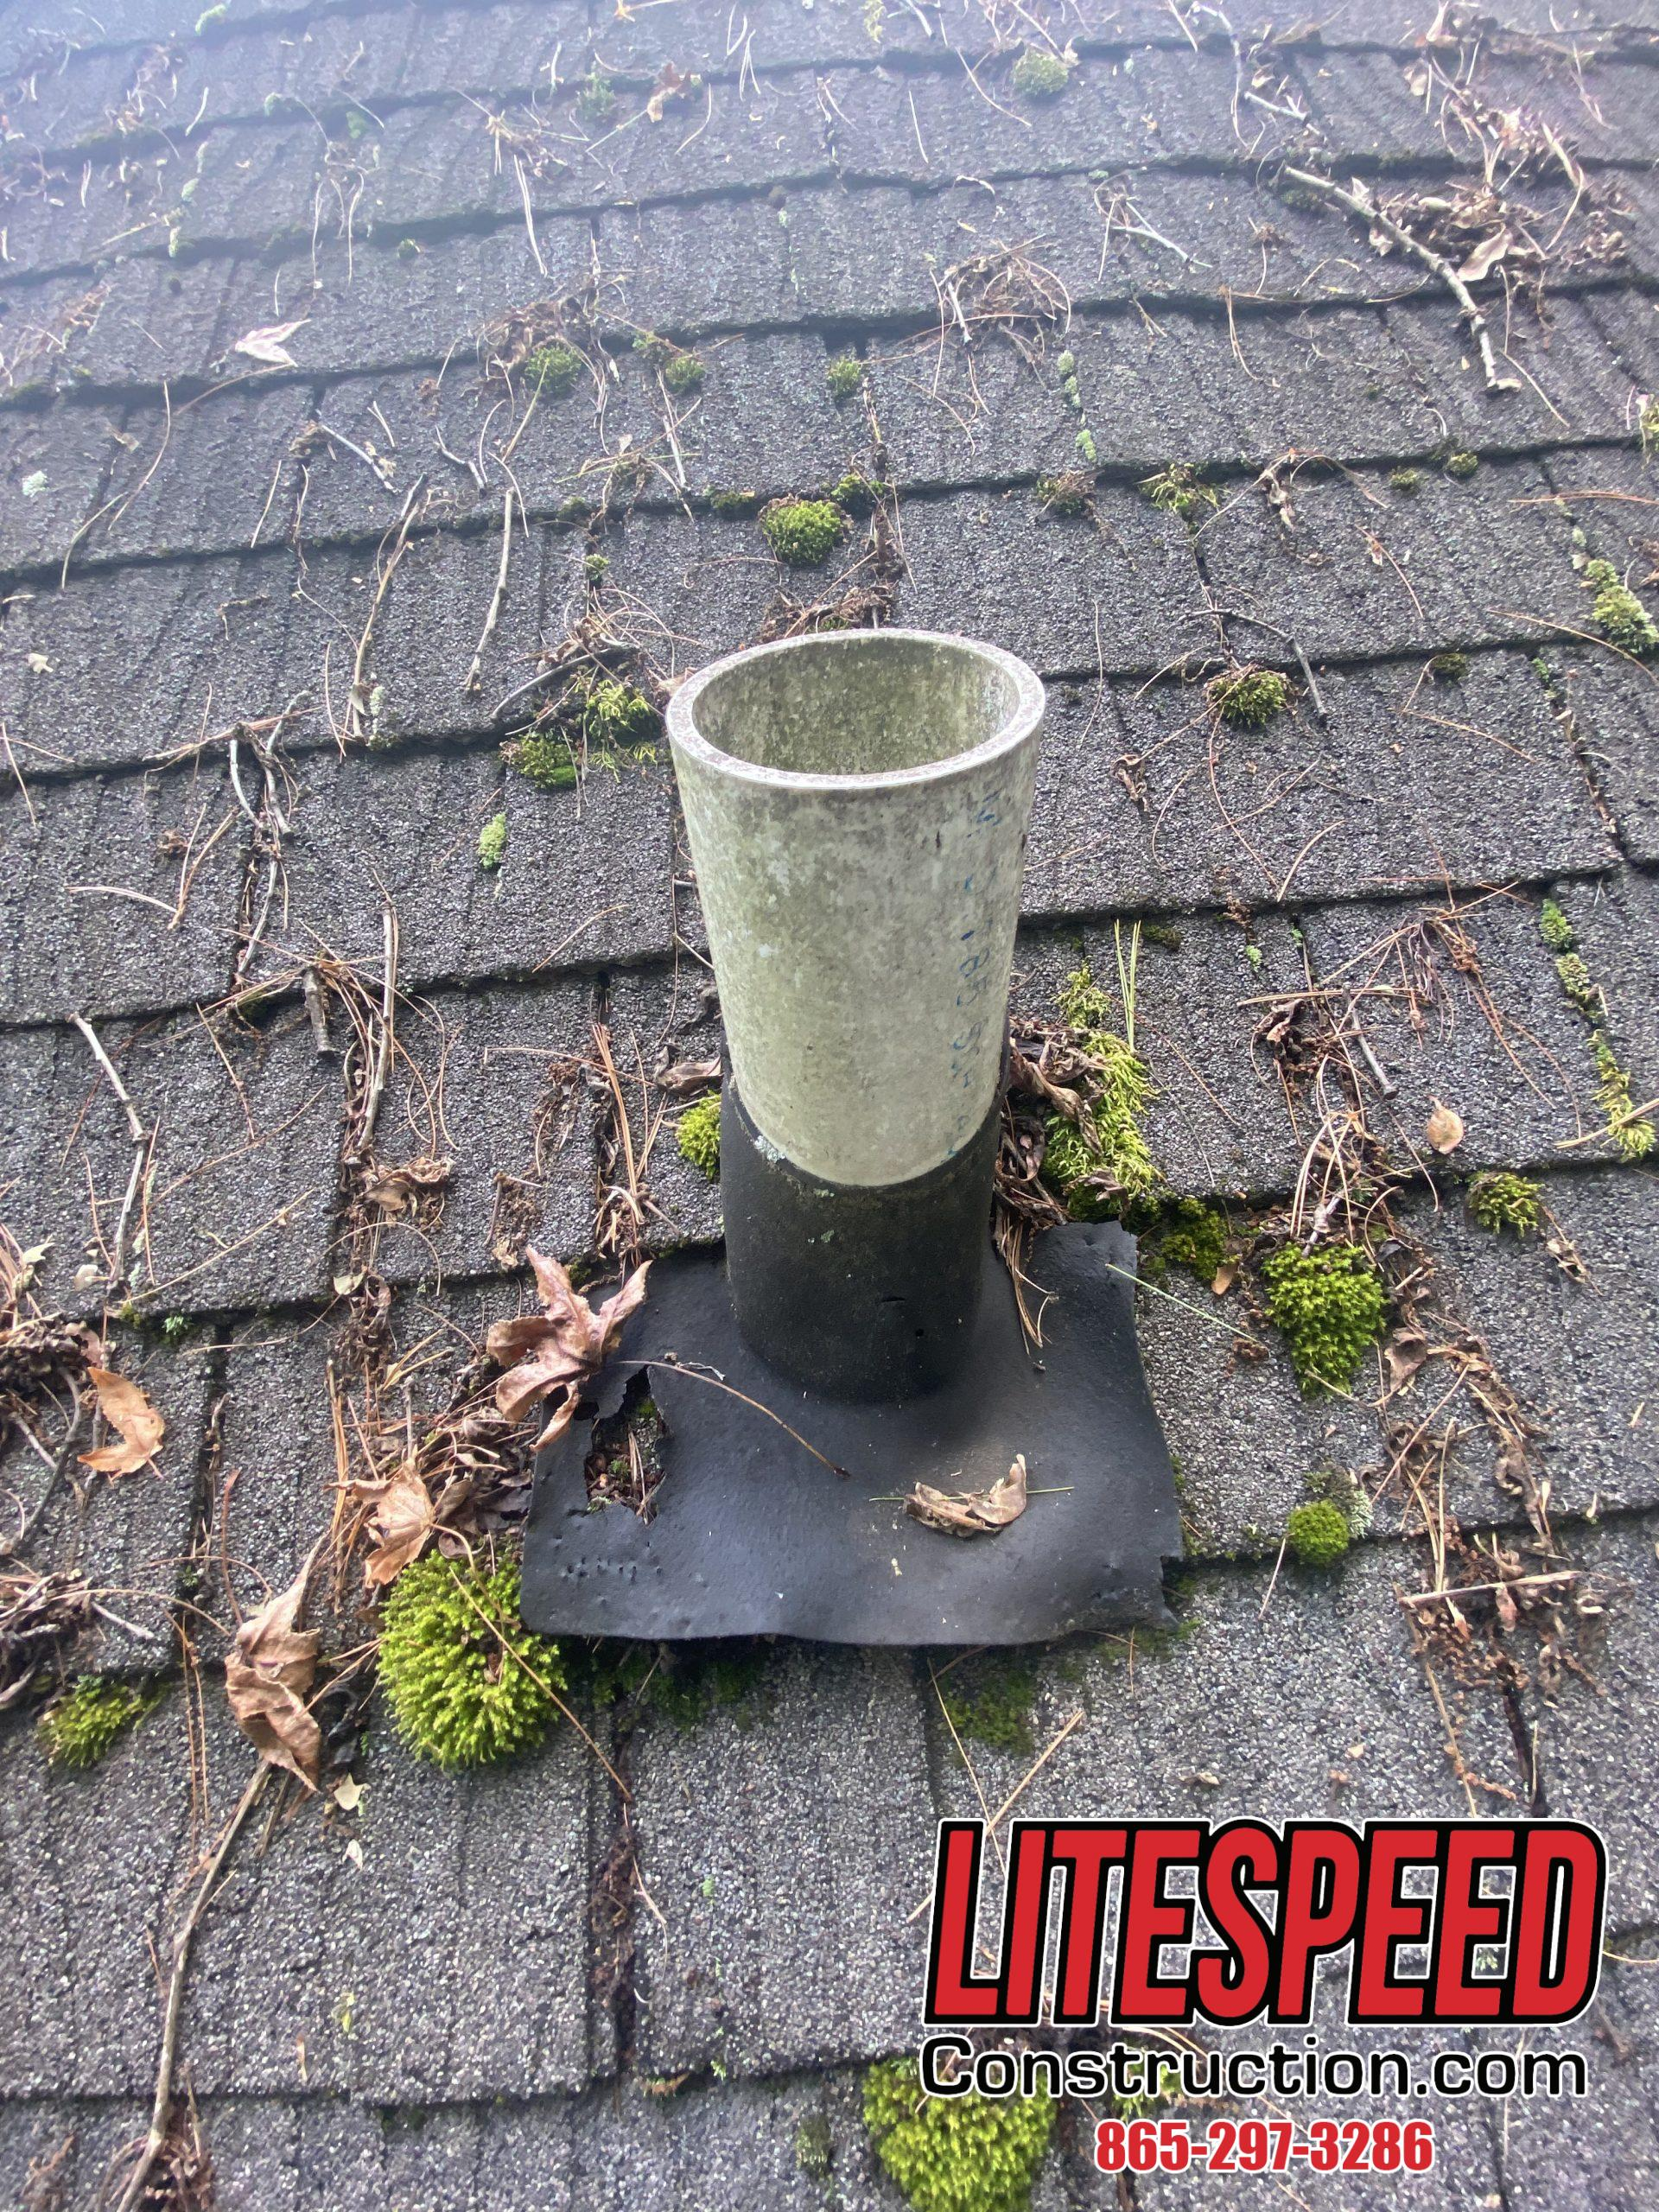 This is a picture of a black plastic pipe boot that has deteriorated